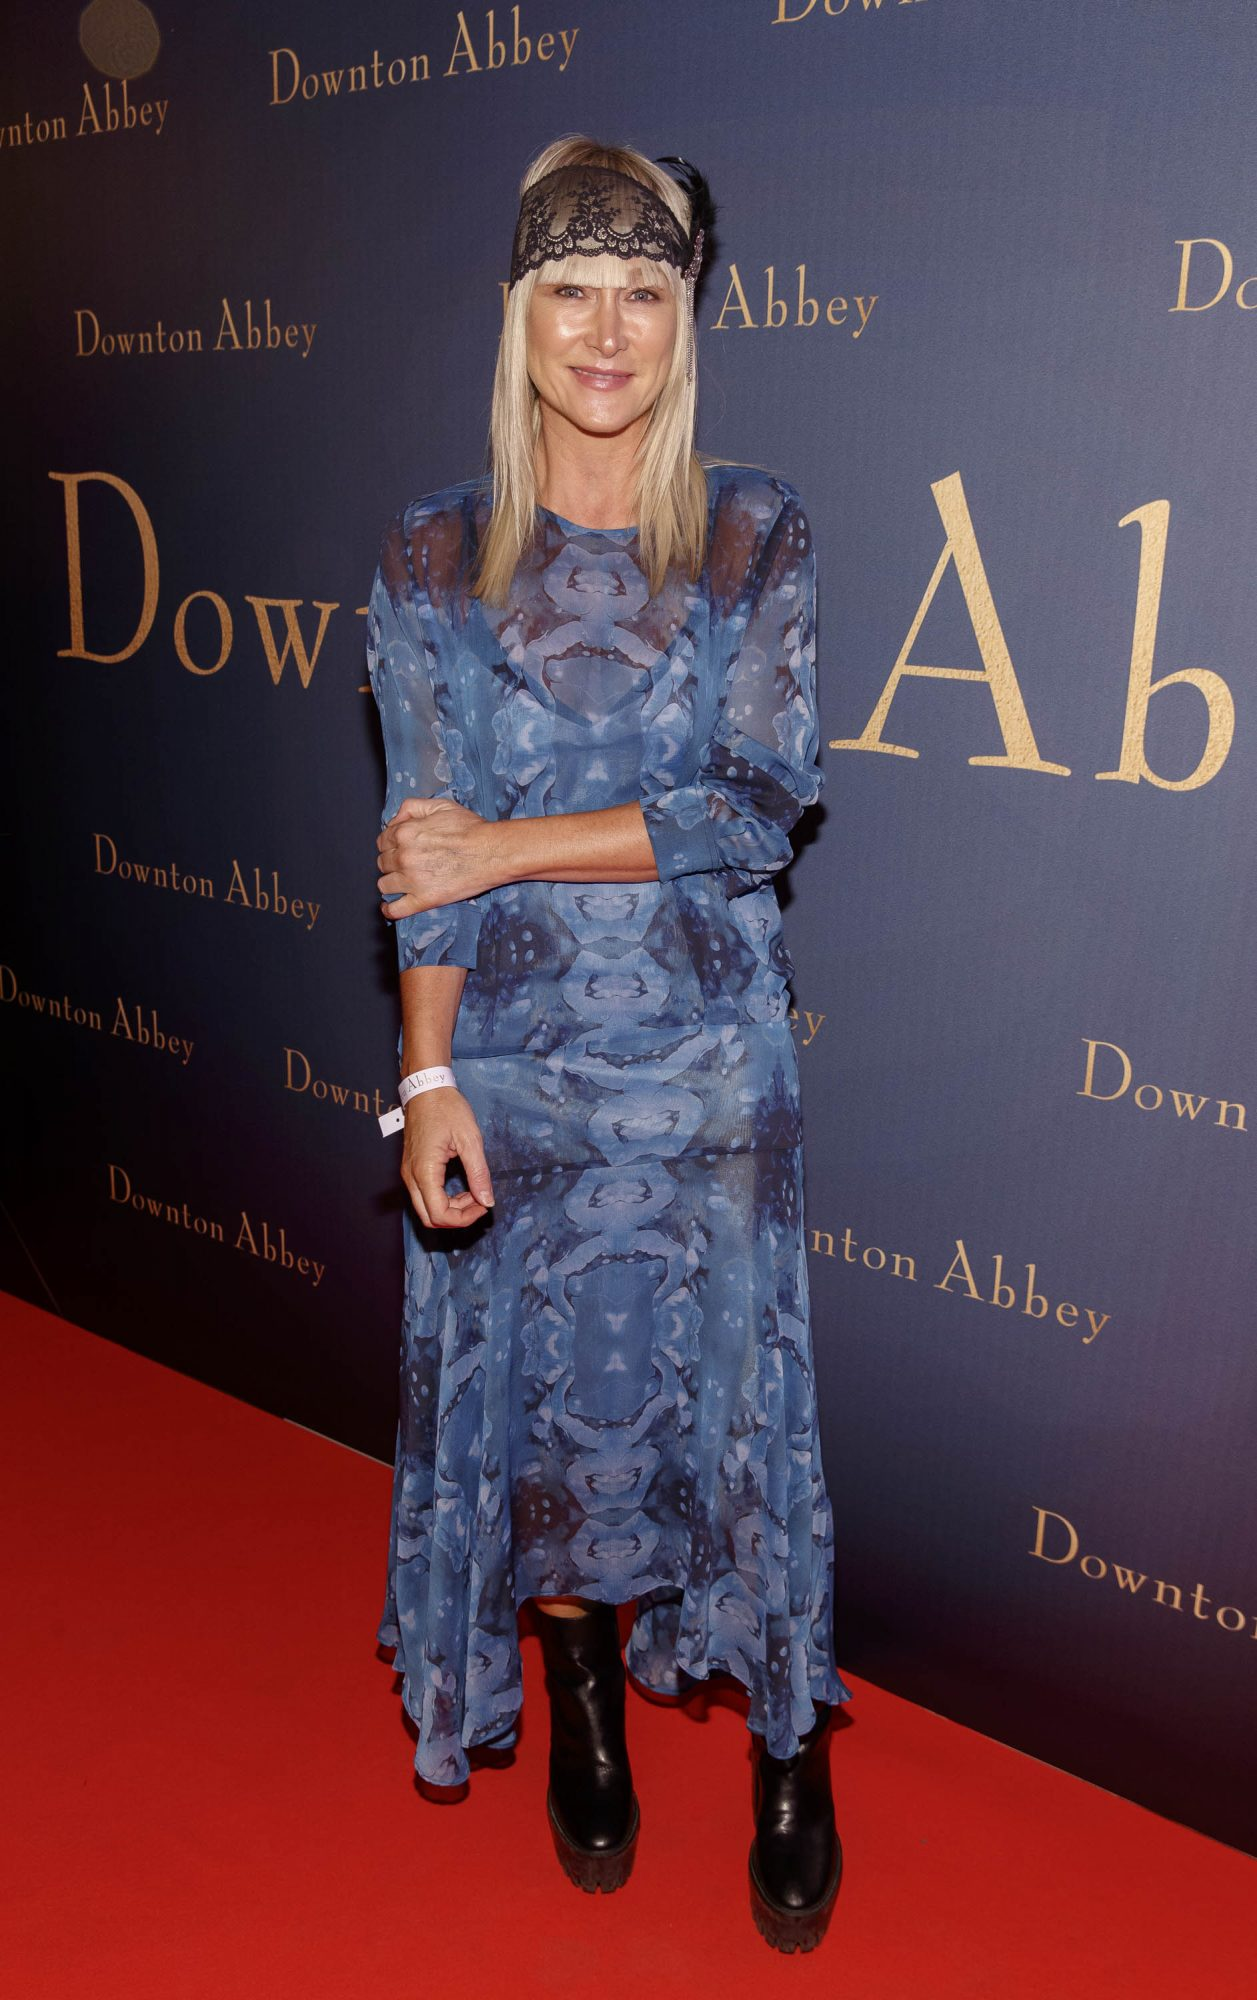 Helen Steele pictured at the Universal Pictures Irish premiere screening of DOWNTON ABBEY at The Stella Theatre, Rathmines. Releasing in cinemas across Ireland from this Friday September 13th, starring the original cast, the worldwide phenomenon DOWNTON ABBEY, becomes a grand motion picture event. Picture Andres Poveda